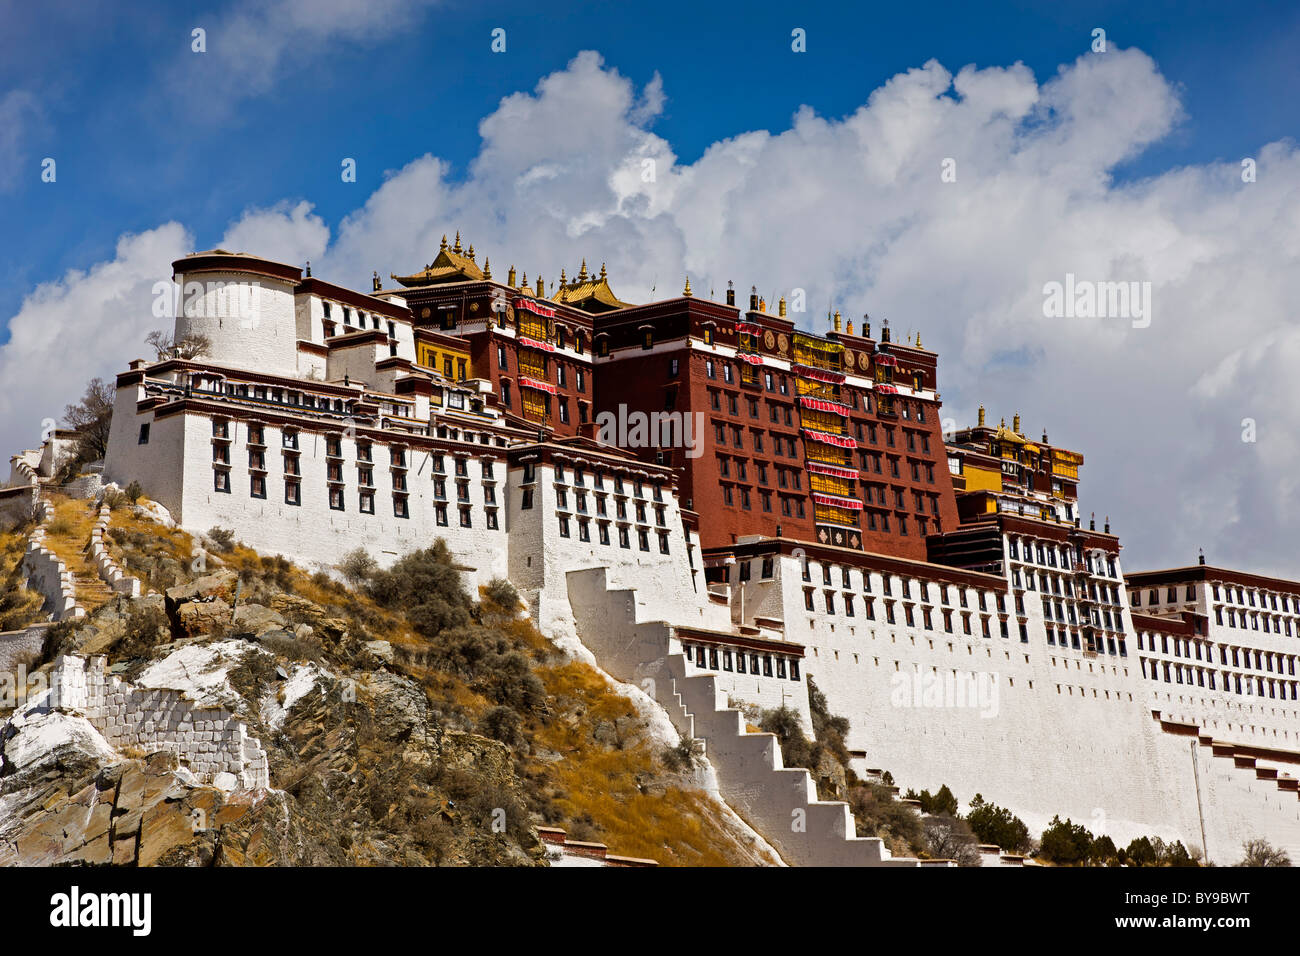 The Potala Palace Lhasa Tibet. JMH4589 - Stock Image